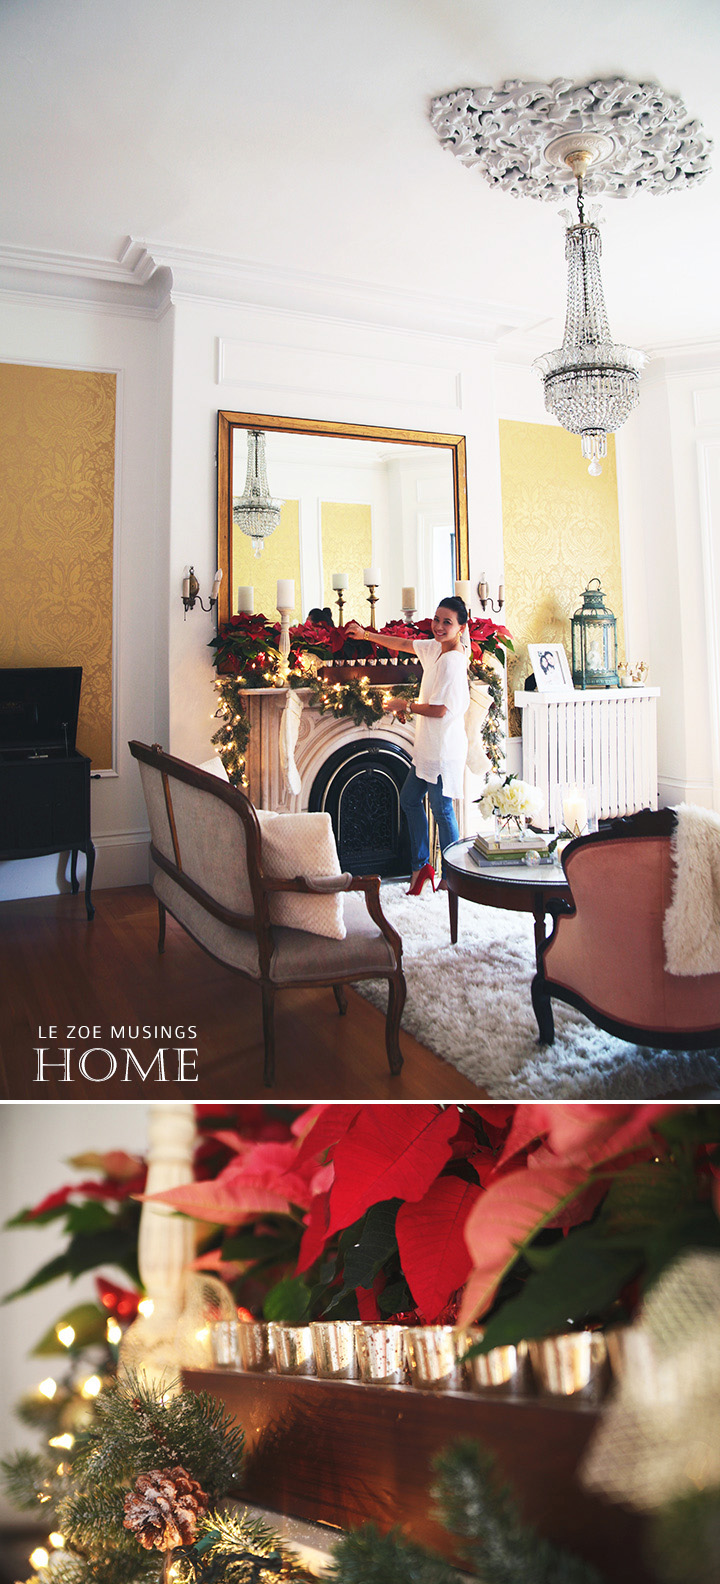 My Home Holiday Decor by Le Zoe Musings2